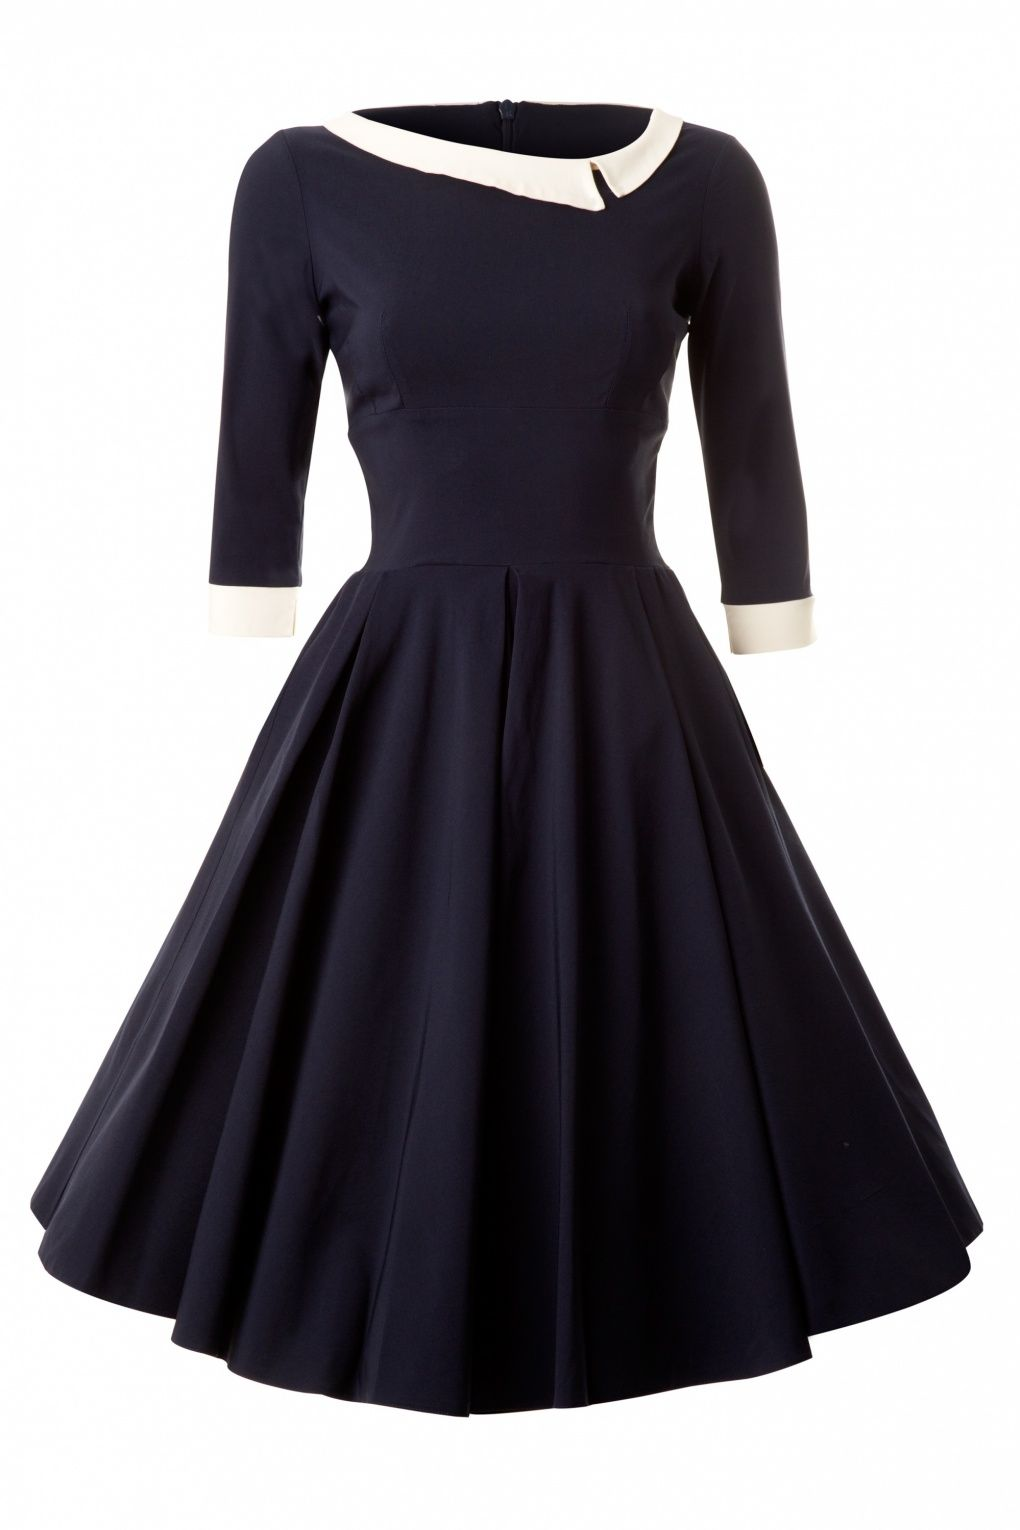 Navy Mistress Mad Men Vintage Swing dress | Pinterest | Mad men ...